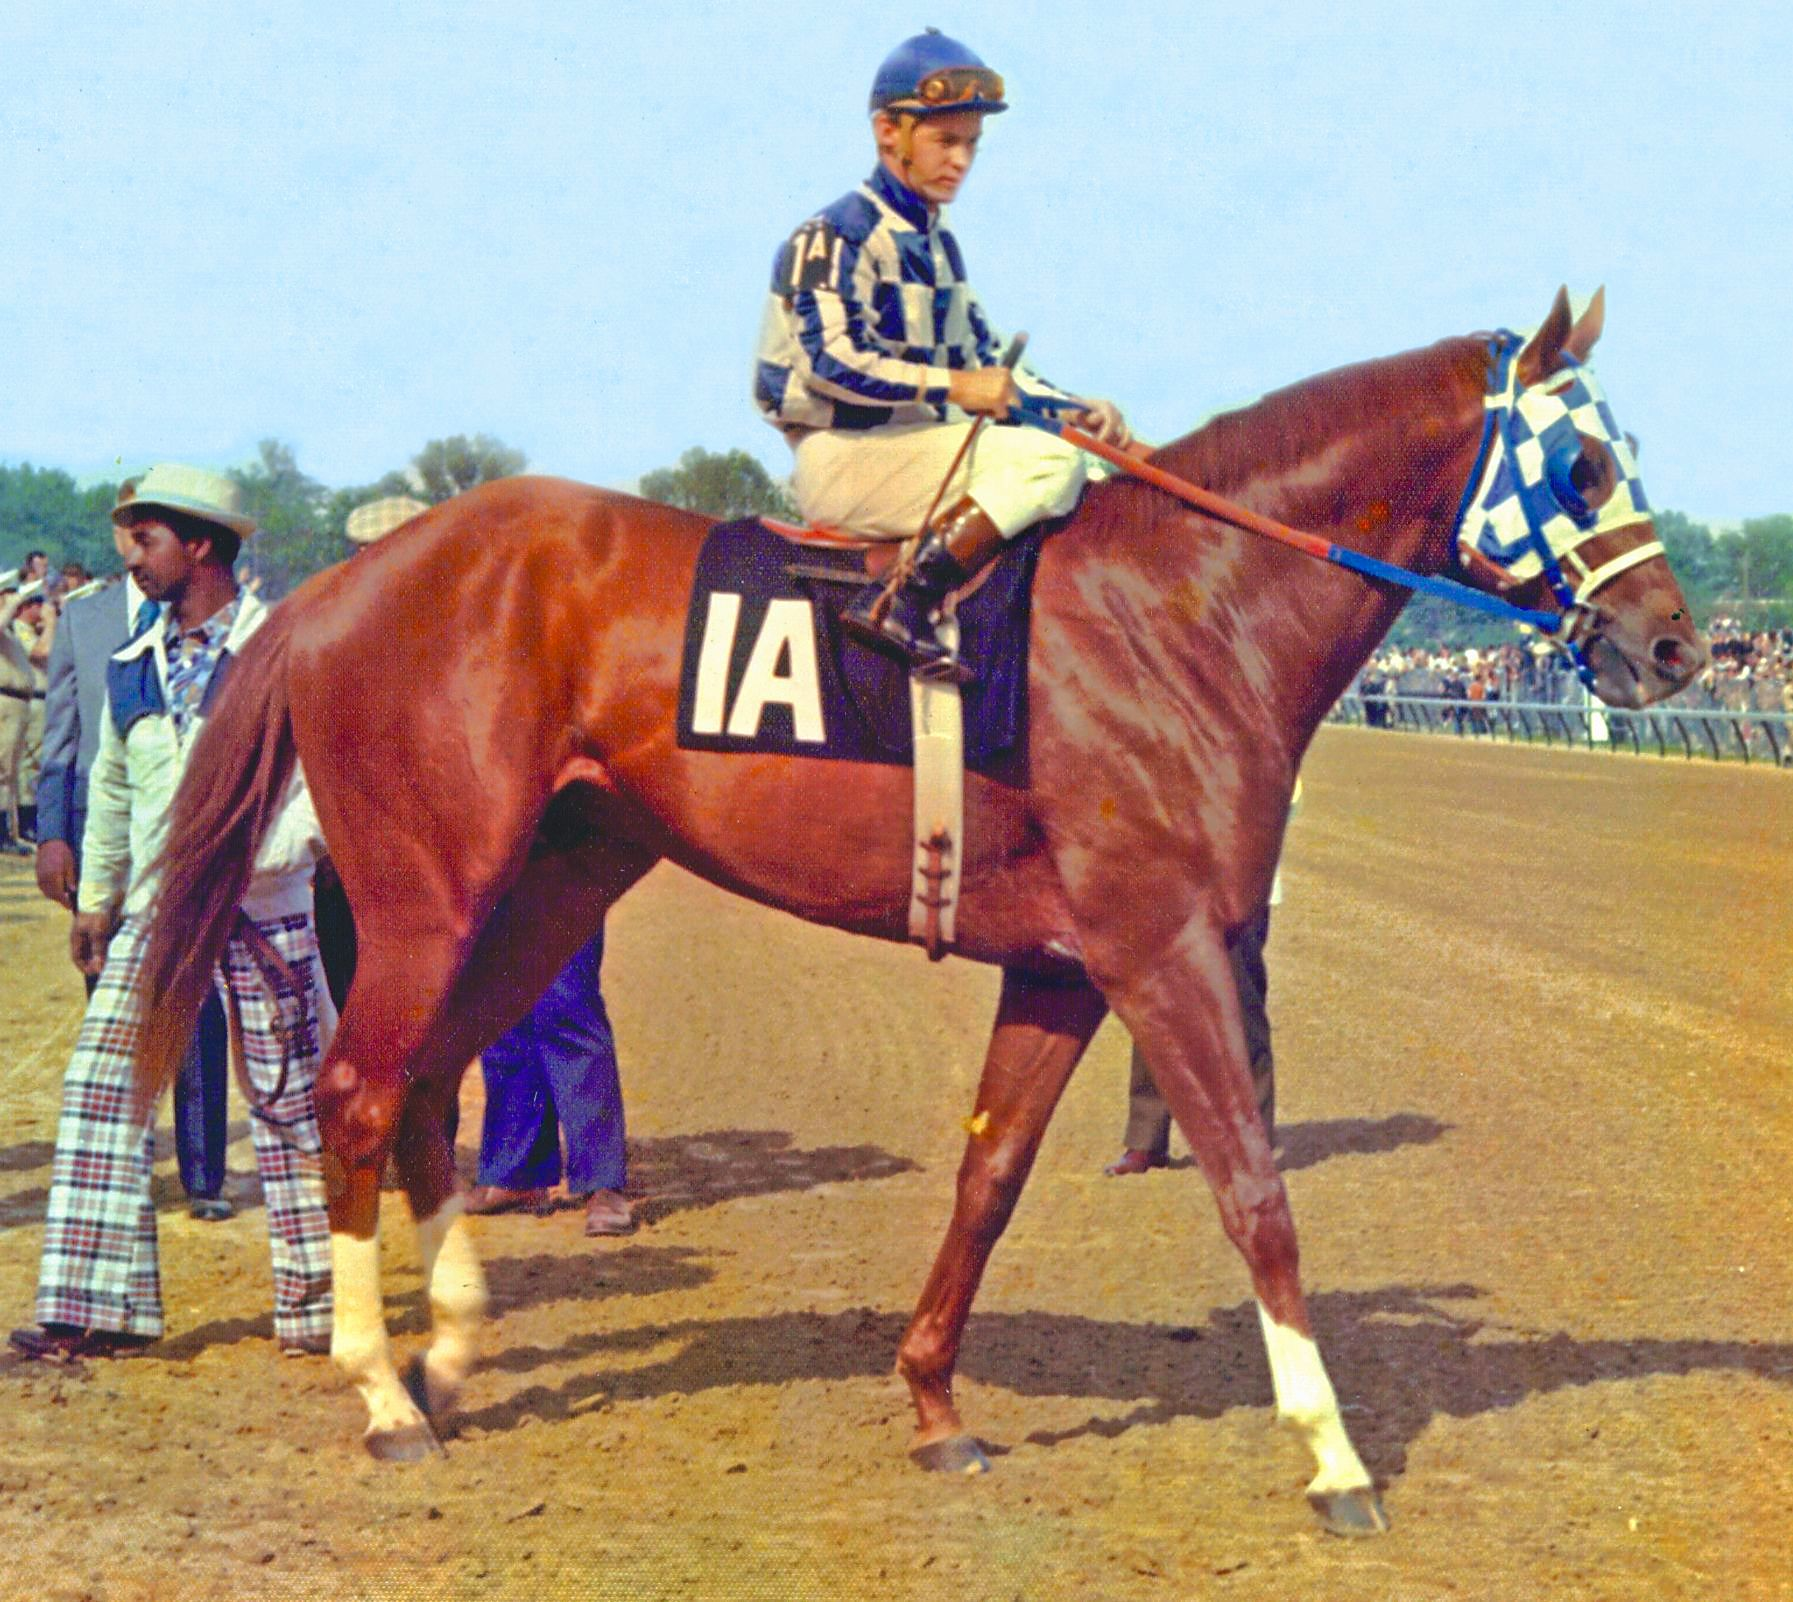 Secretariat with Ron Turcotte up (NYRA)